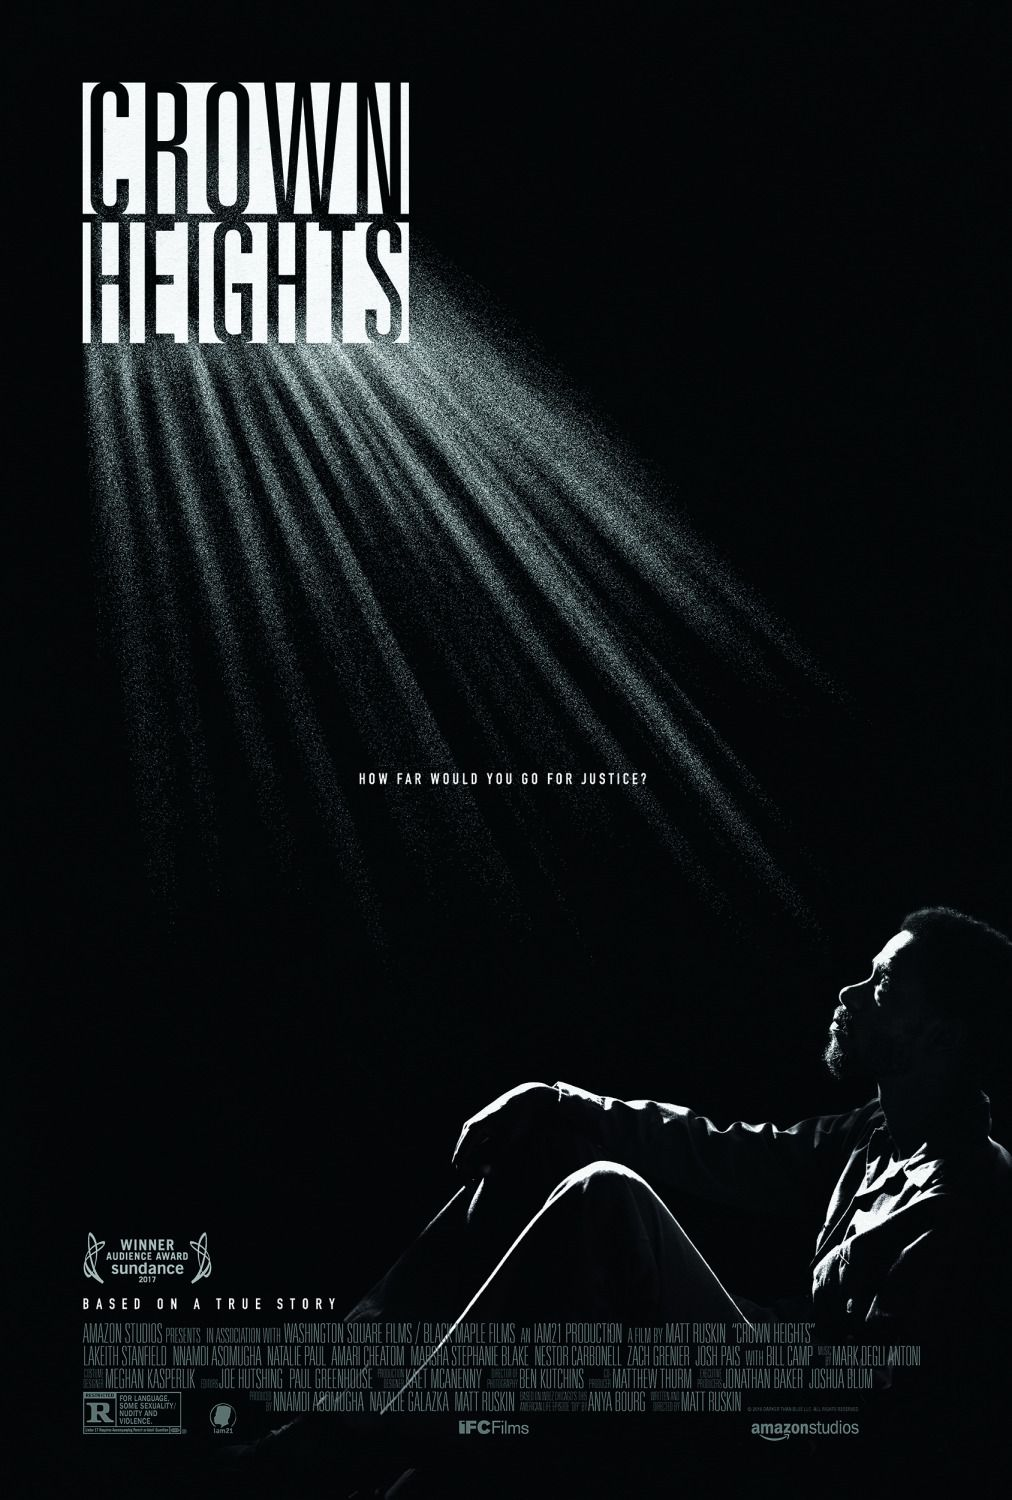 Crown Heights - Keith Stanfield - Nnamdi Asomugha - Natalie Paul - Bill Camp - film poster